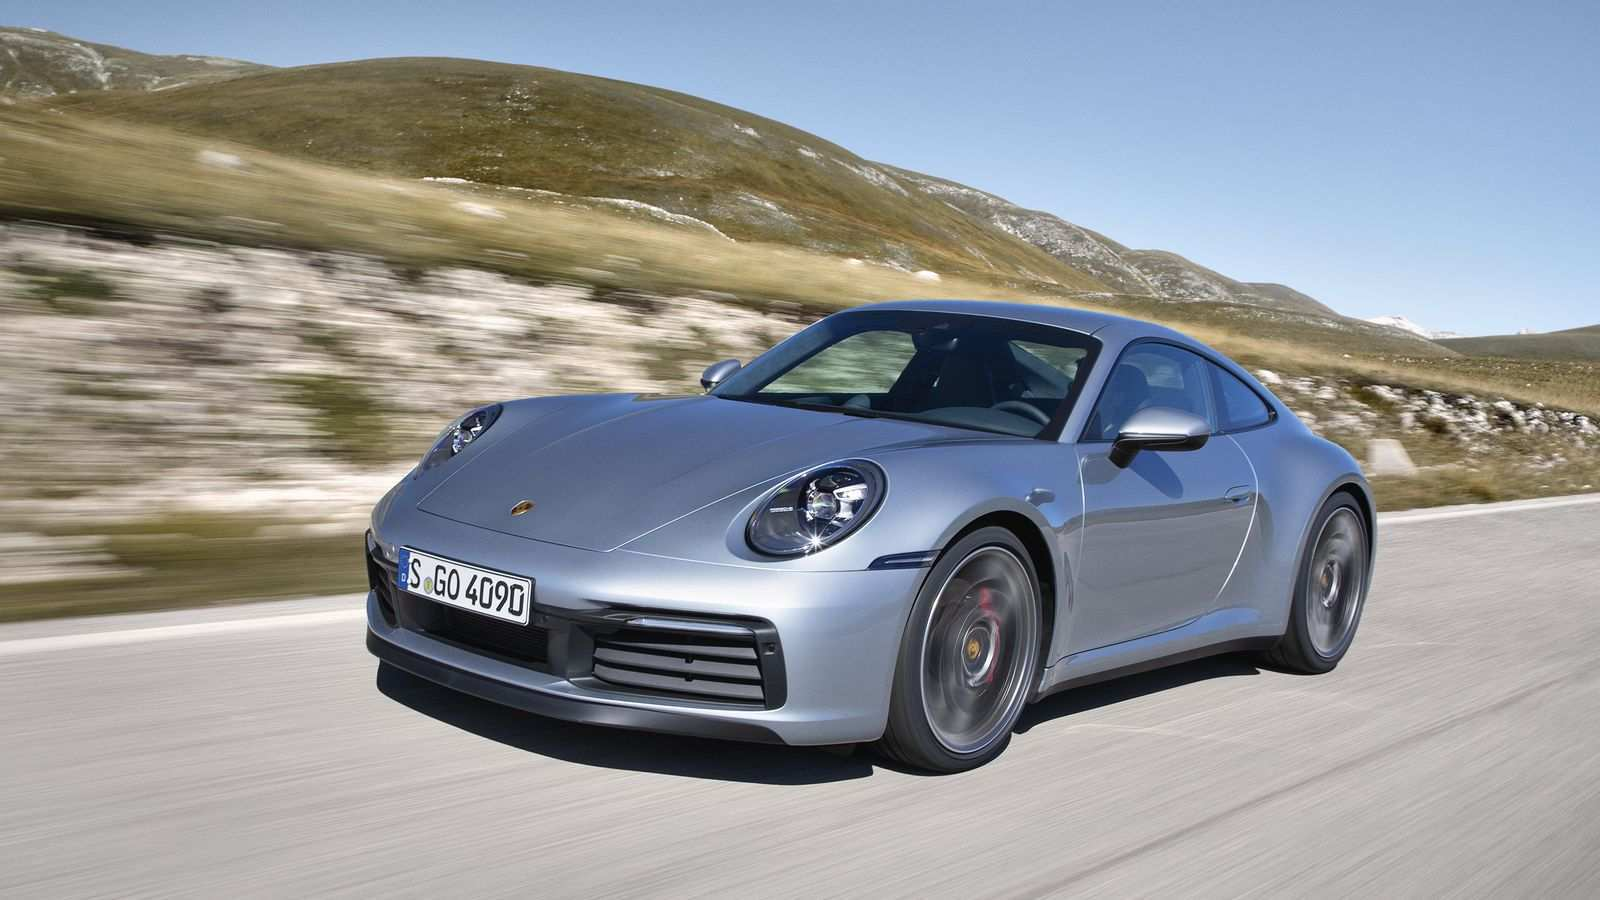 81 Best Review 2020 Porsche 911 Carrera Style for 2020 Porsche 911 Carrera